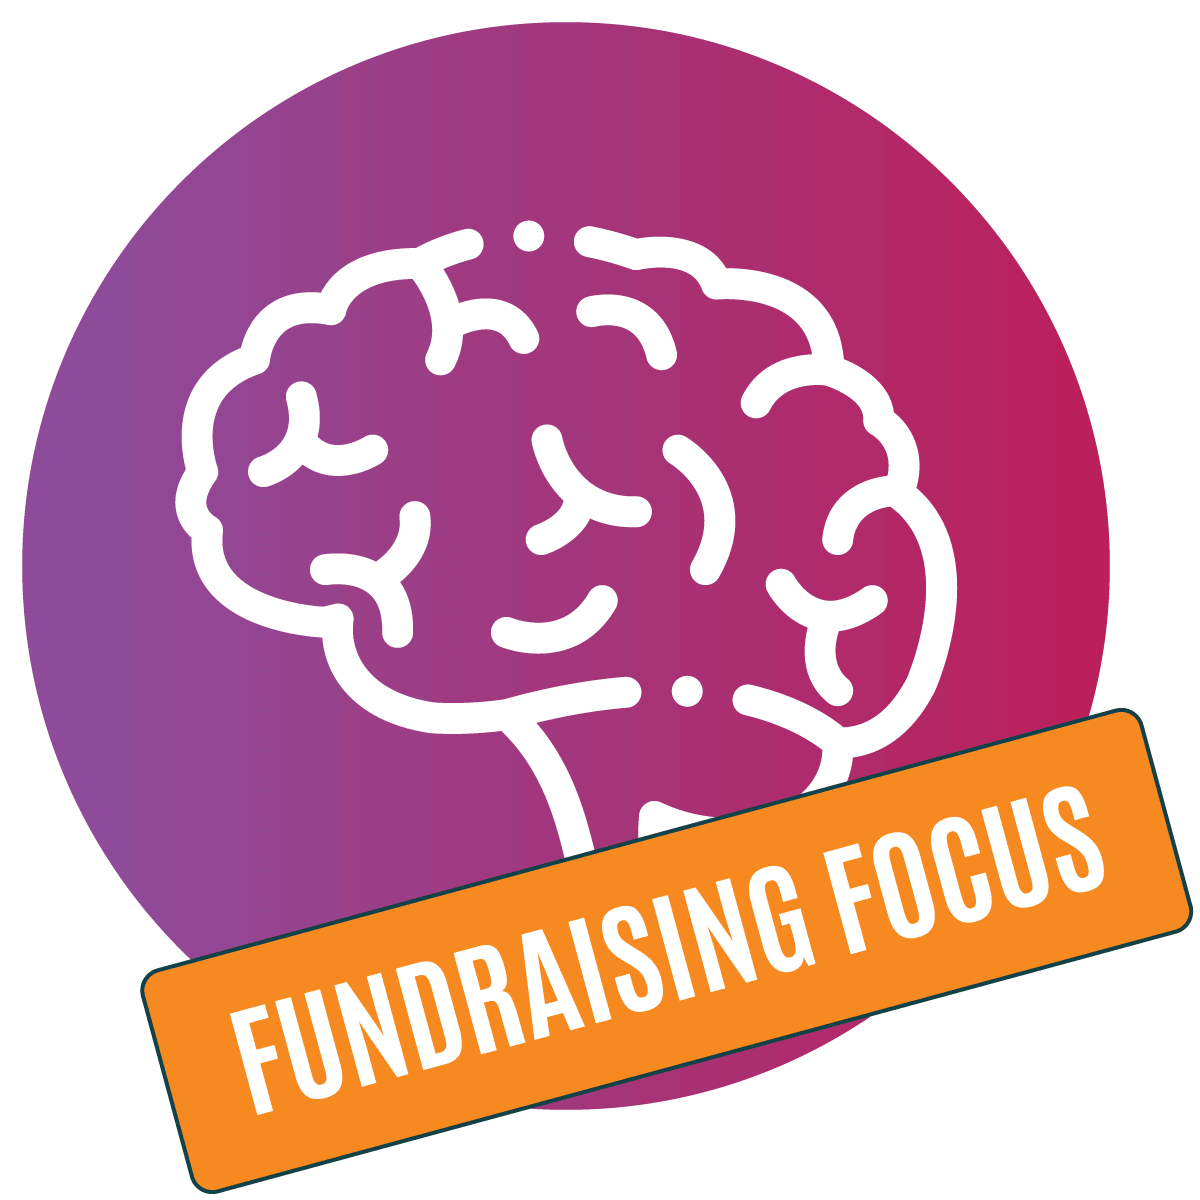 Decision Science | Brain Icon | Change For Better - Fundraising Focus